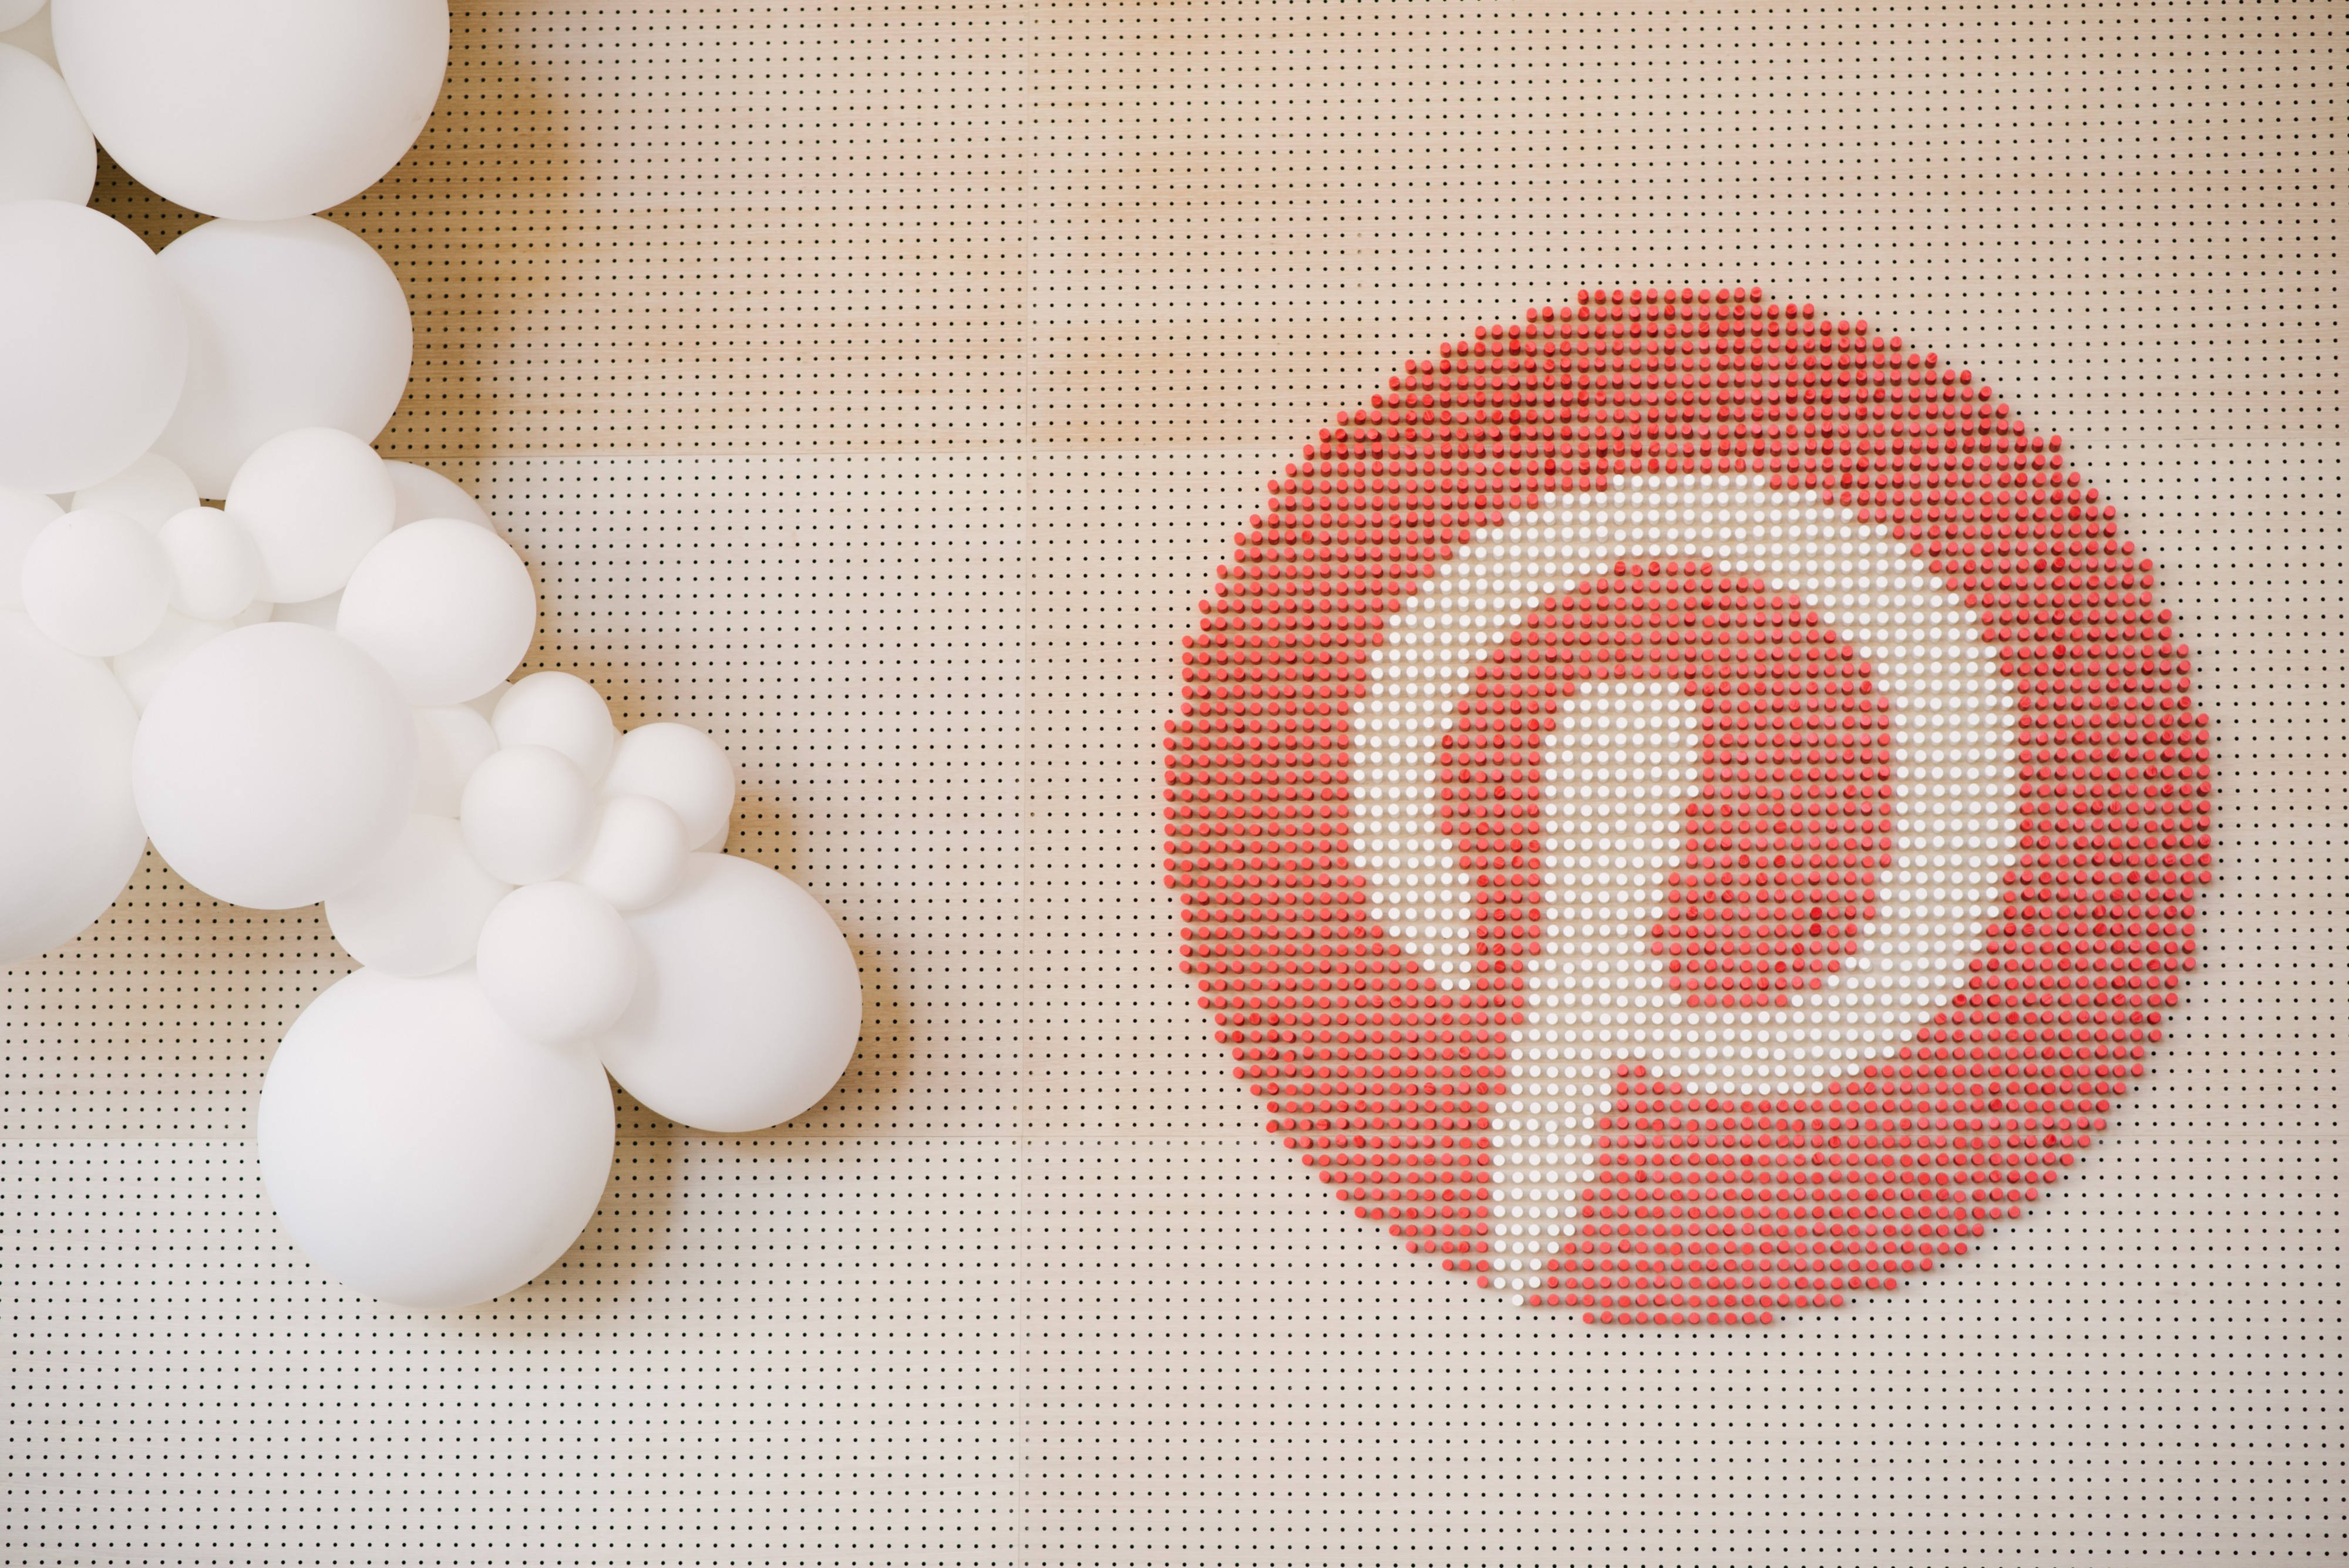 Looking inside the technology that powers Pinterest